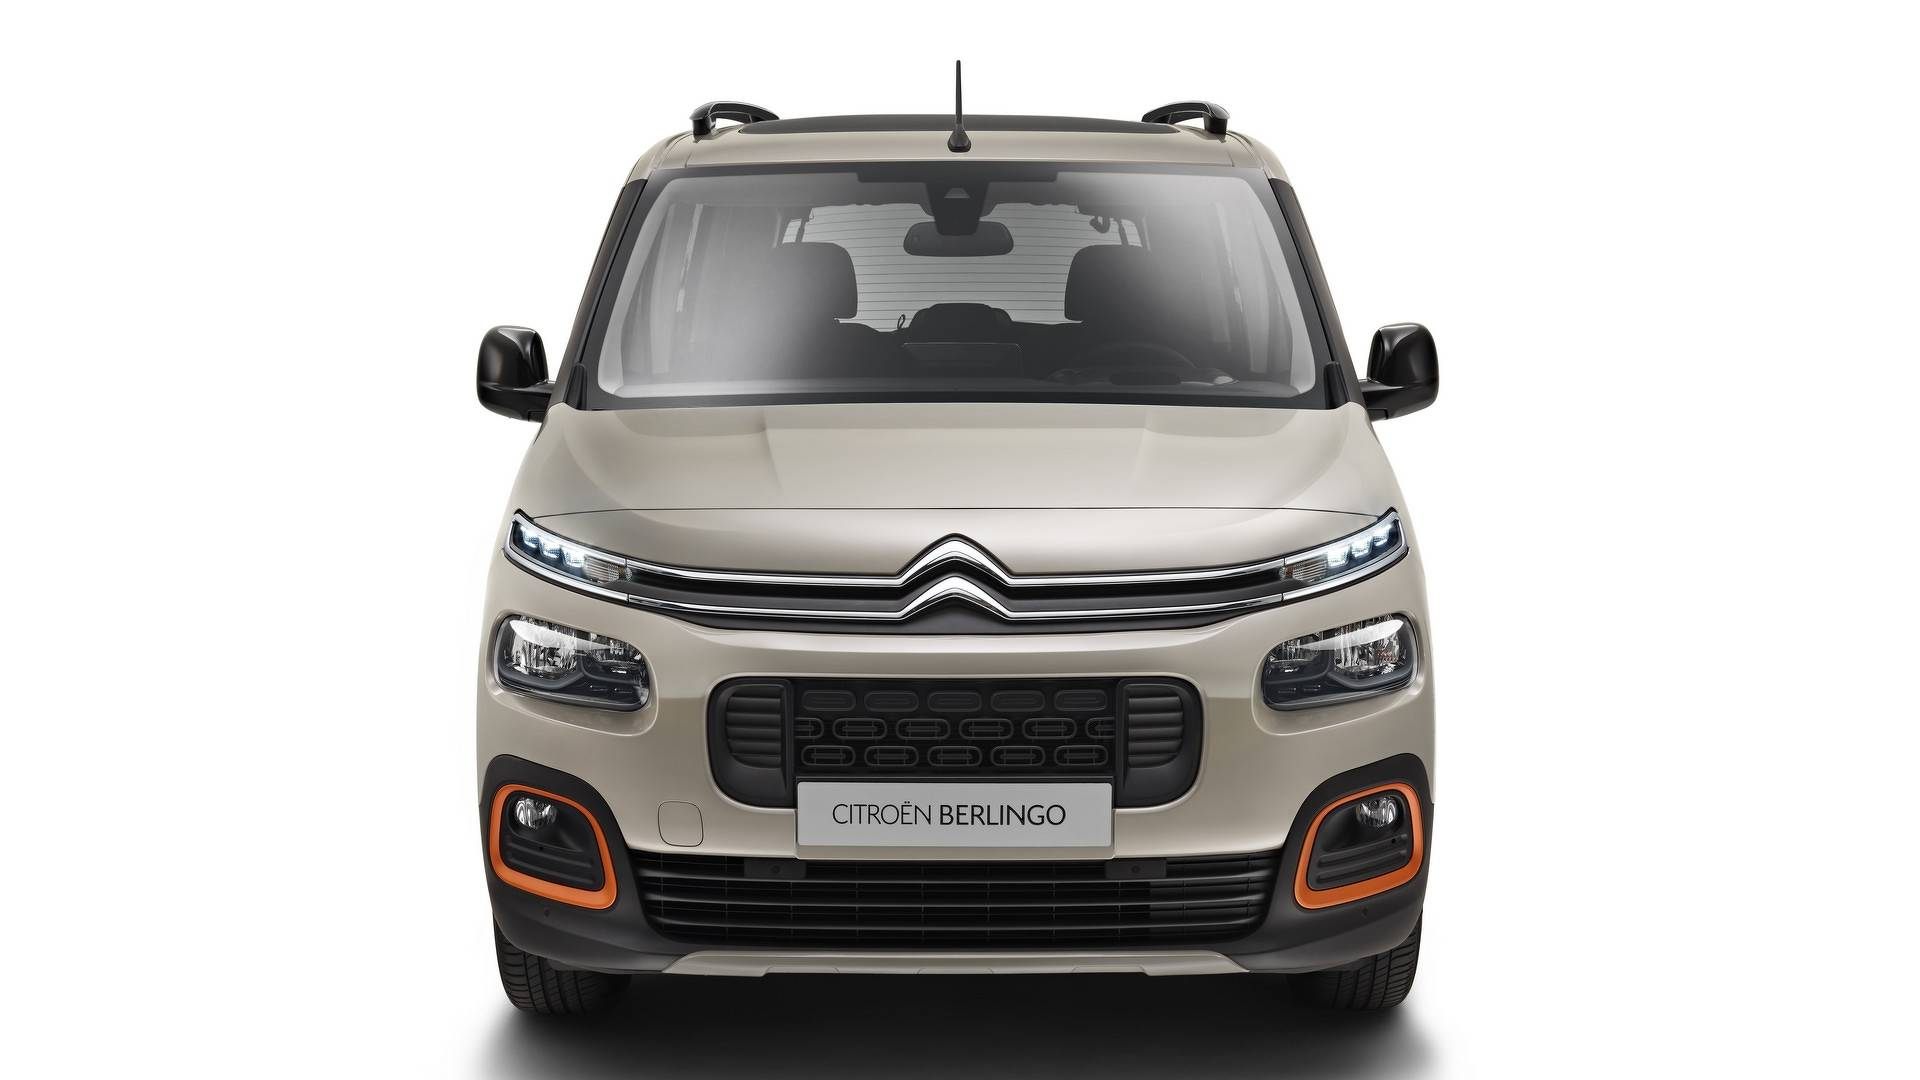 2018 Citroen Berlingo Brings Bold Styling To The Van Segment Xsara Airbag Wiring Diagram